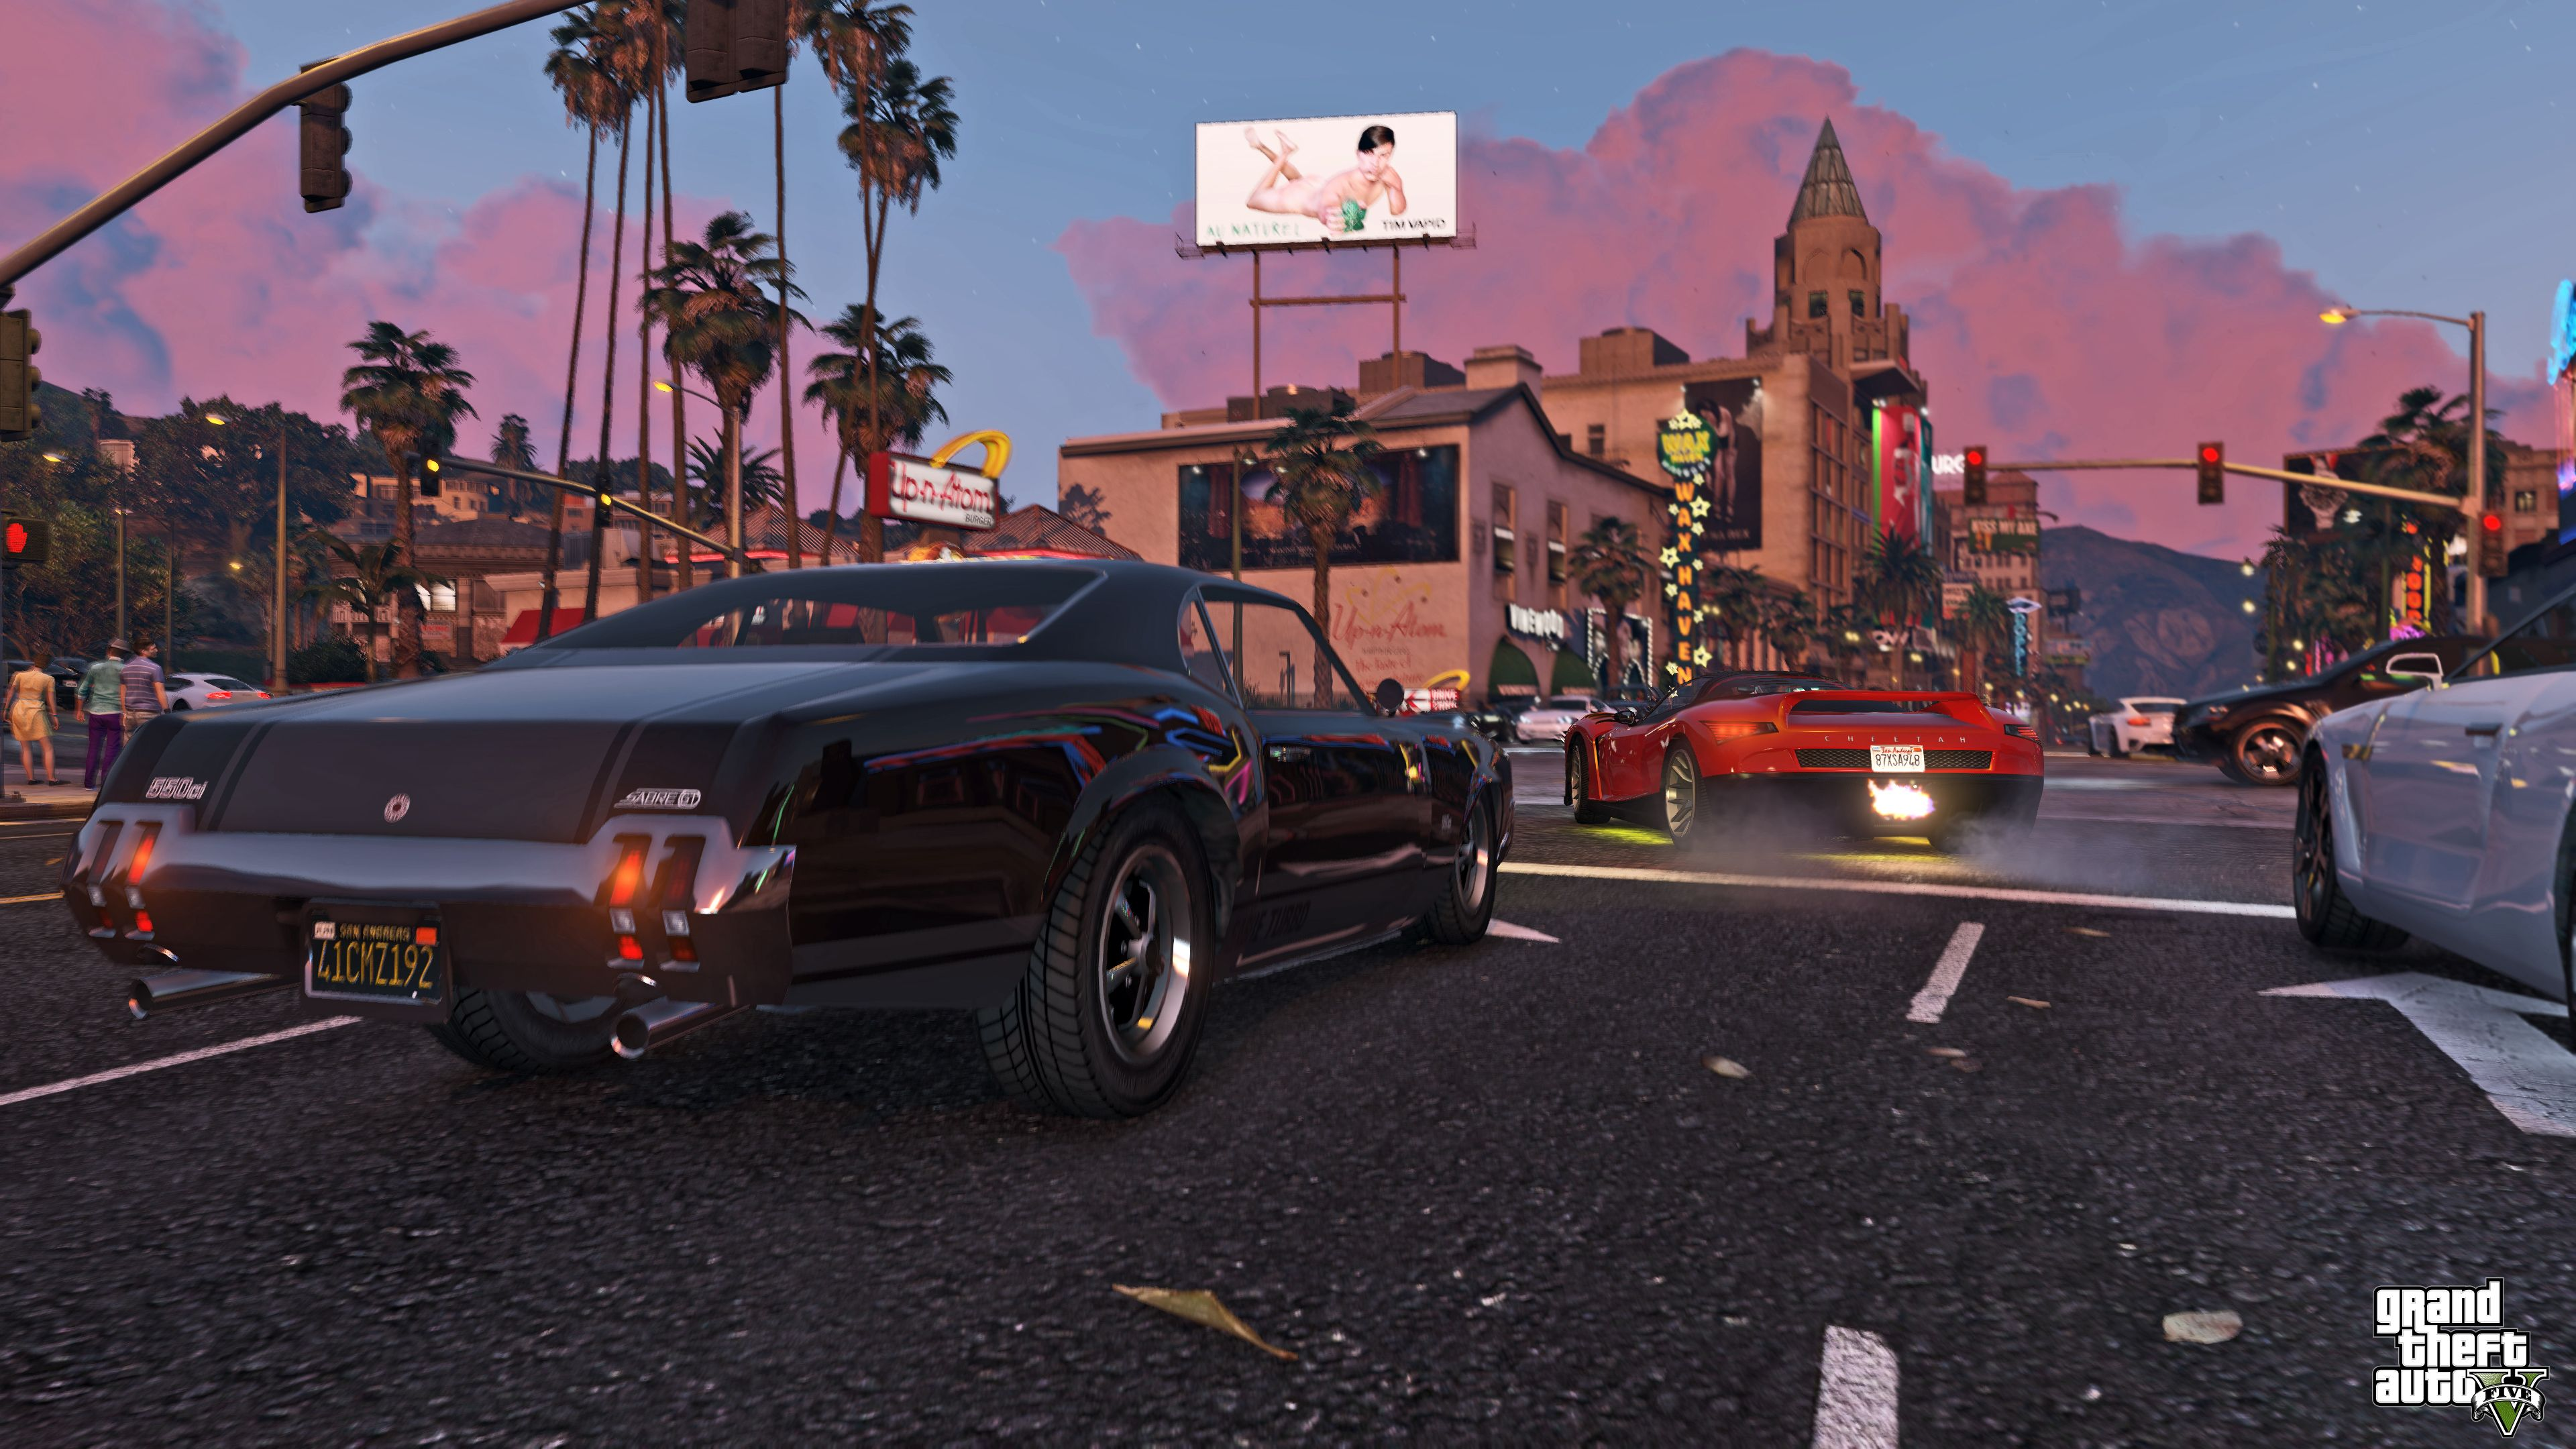 Screens Grand Theft Auto V Grand theft auto, Rockstar